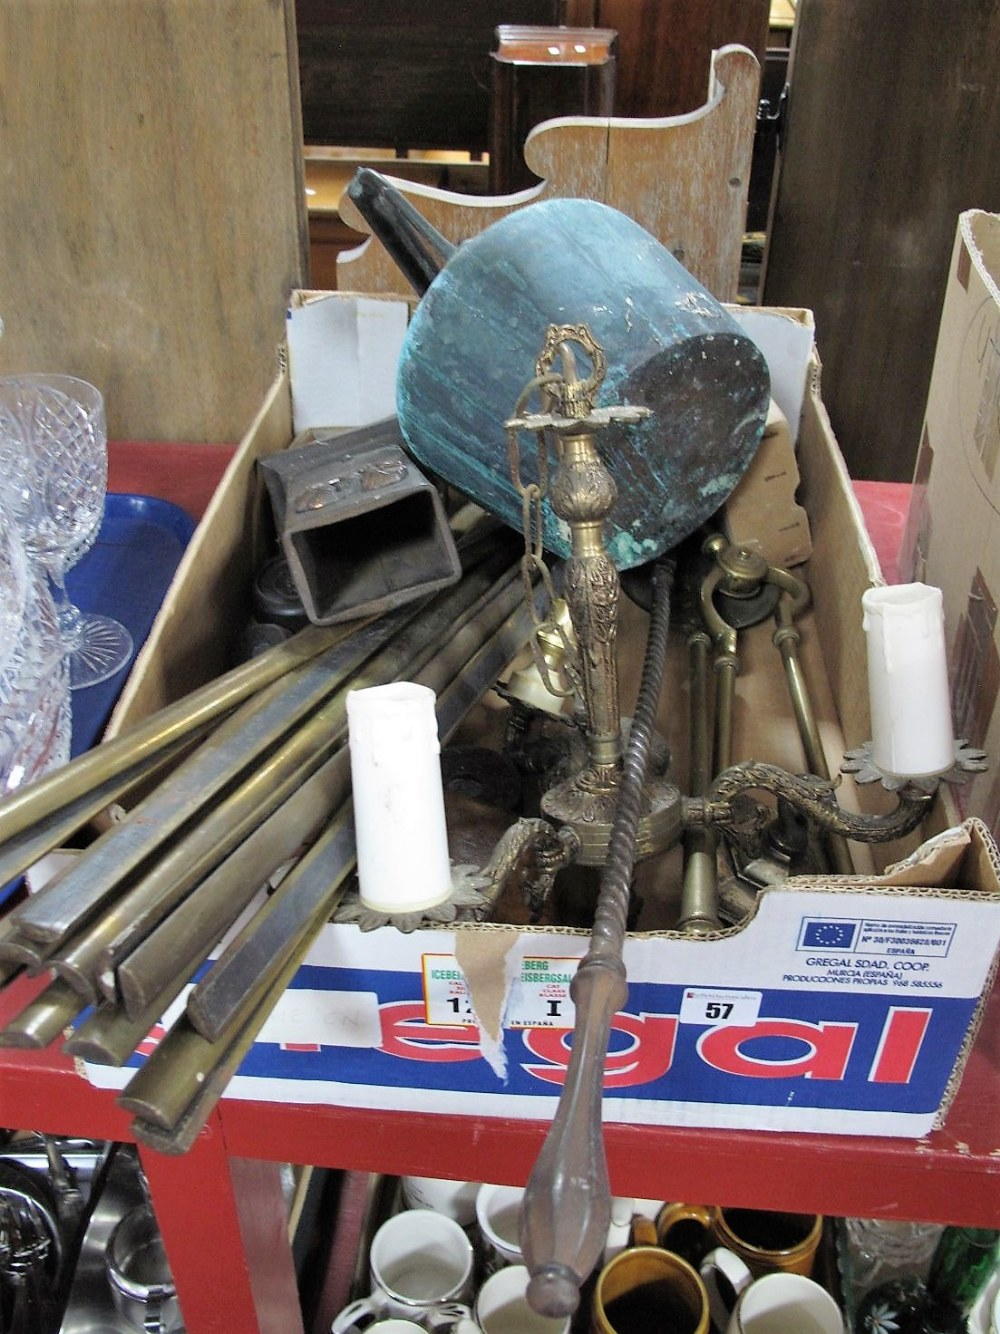 Lot 57 - Early XX Century Brass Stair Rods, scale weights (1/4 ounce to 2lb), fireside companion items,